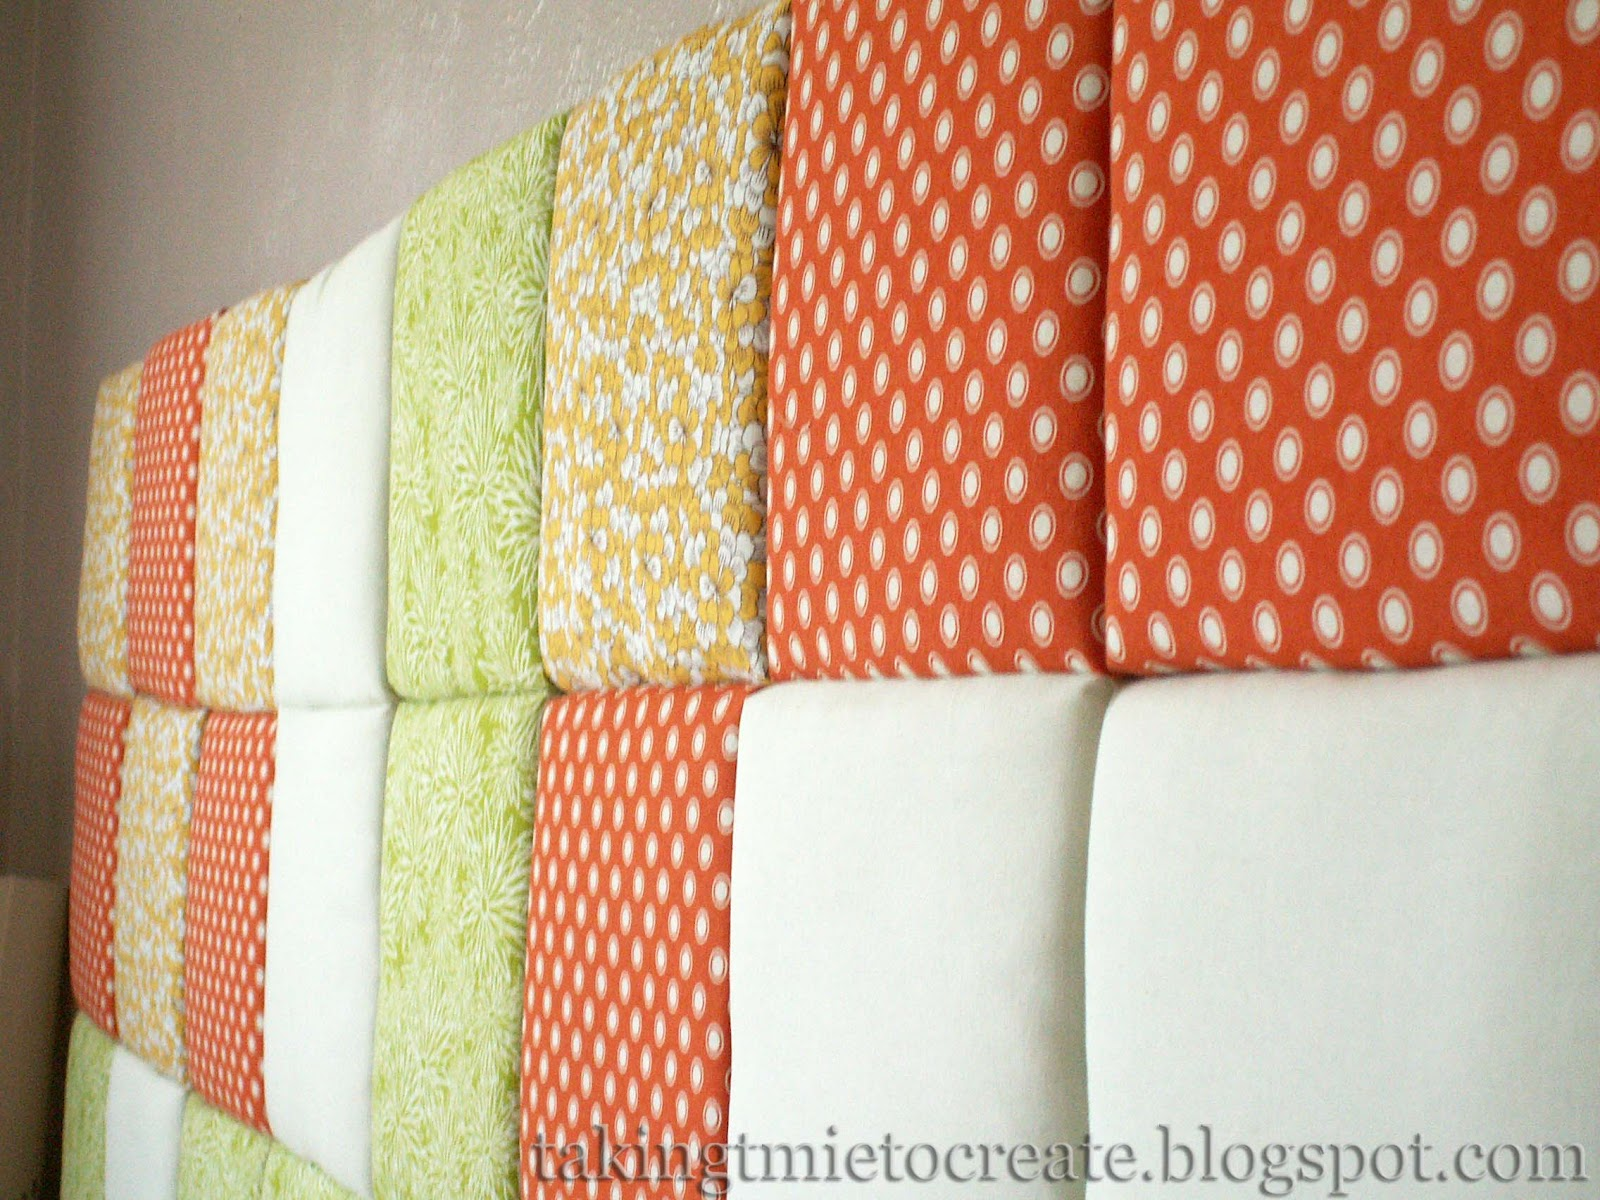 Patchwork Headboard Tutorial Bit Coin Plus Mine Bitcoins